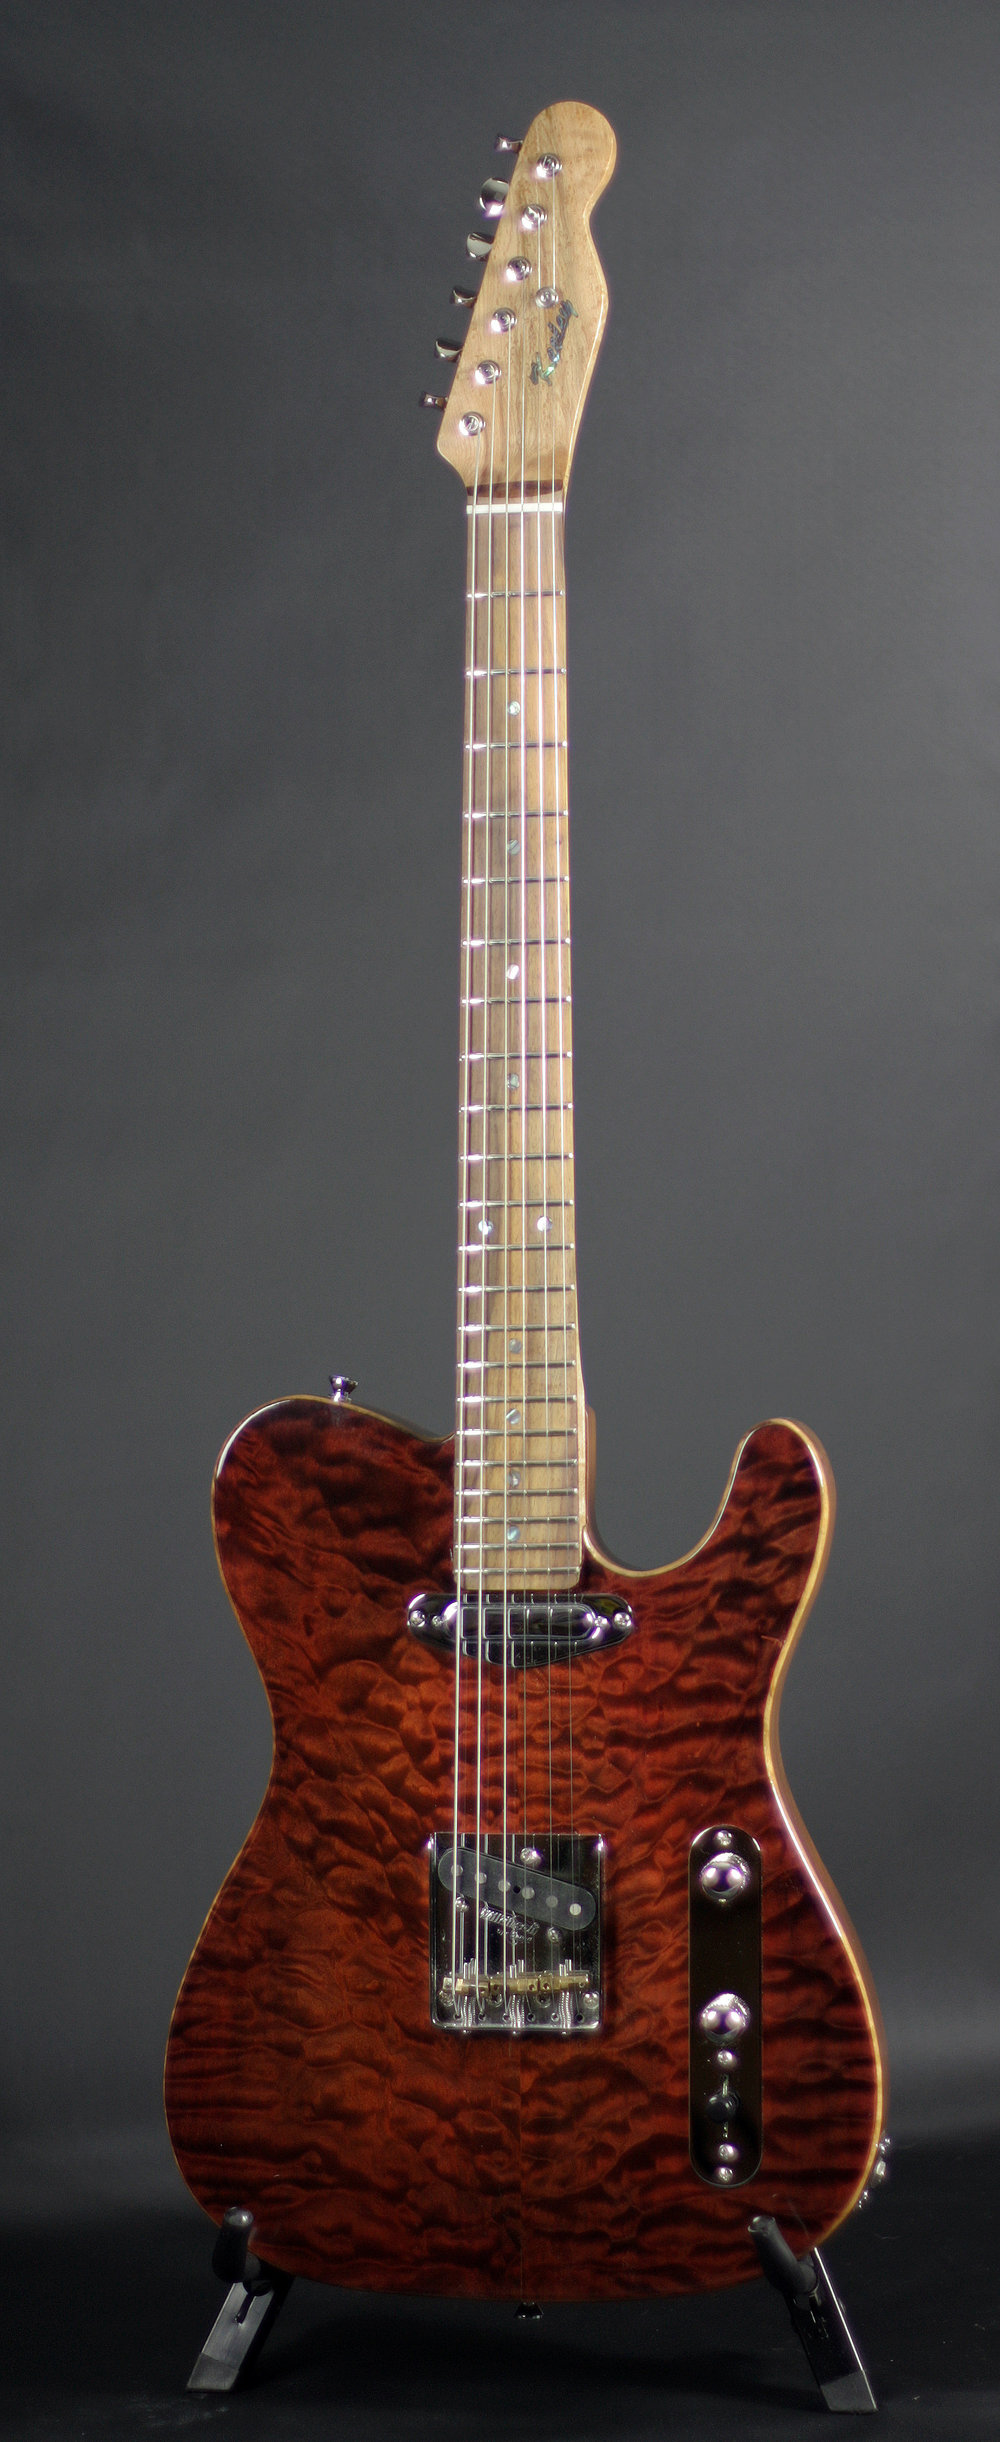 "T-Style  - SOLDThree Piece Walnut BodyHighly Figured Quilted Maple TopTwo Texas Special PickupsWilkinson Chrome BridgeKluson Chrome TunersIndian Rosewood Fretboard 7.25 RadiusBirdseye Maple NeckAbalone Inlay25.5"" ScaleMedium Jumbo FretsNitro Lacquer FinishTweed Hardshell Case"